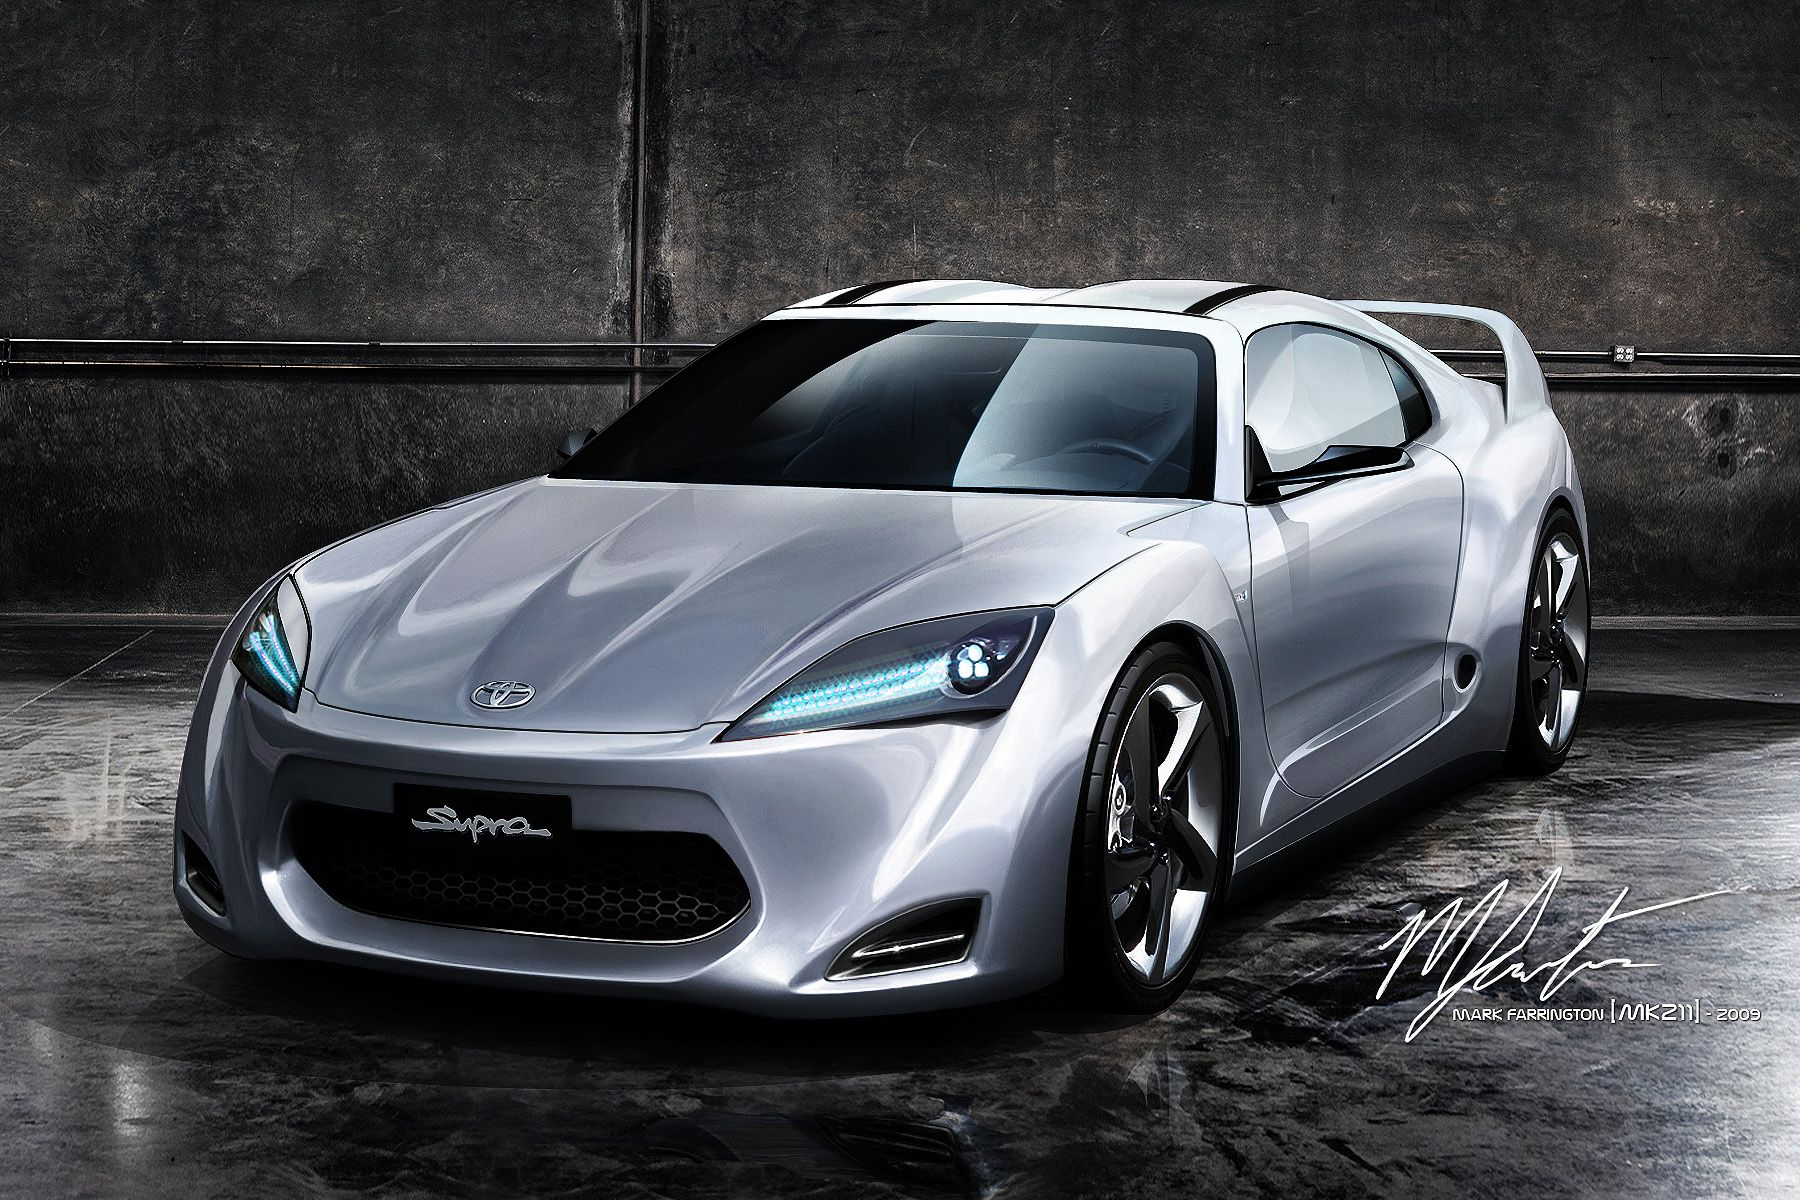 Toyota Supra Concept With Images Toyota Concept Car Toyota